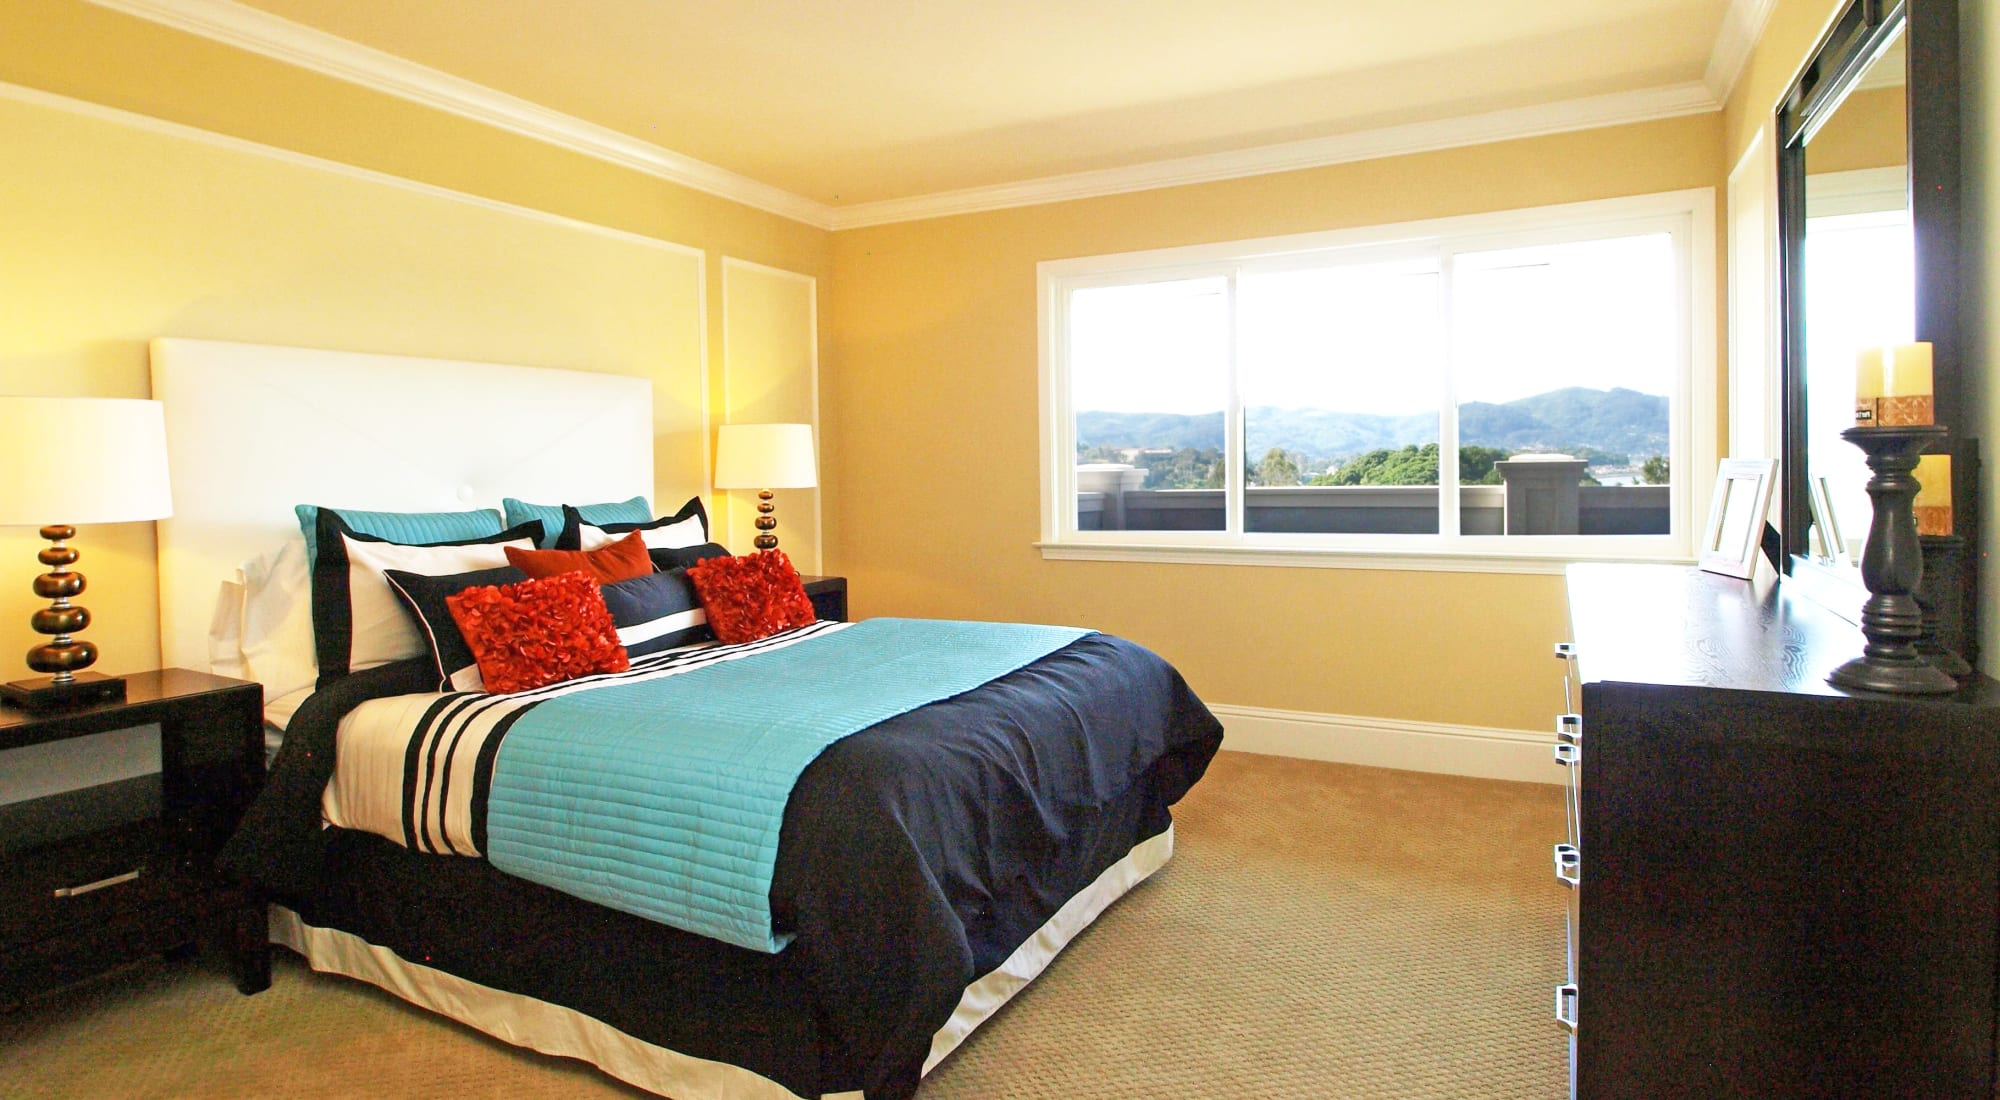 Apartments at Palmetto at Tiburon View in Tiburon, California